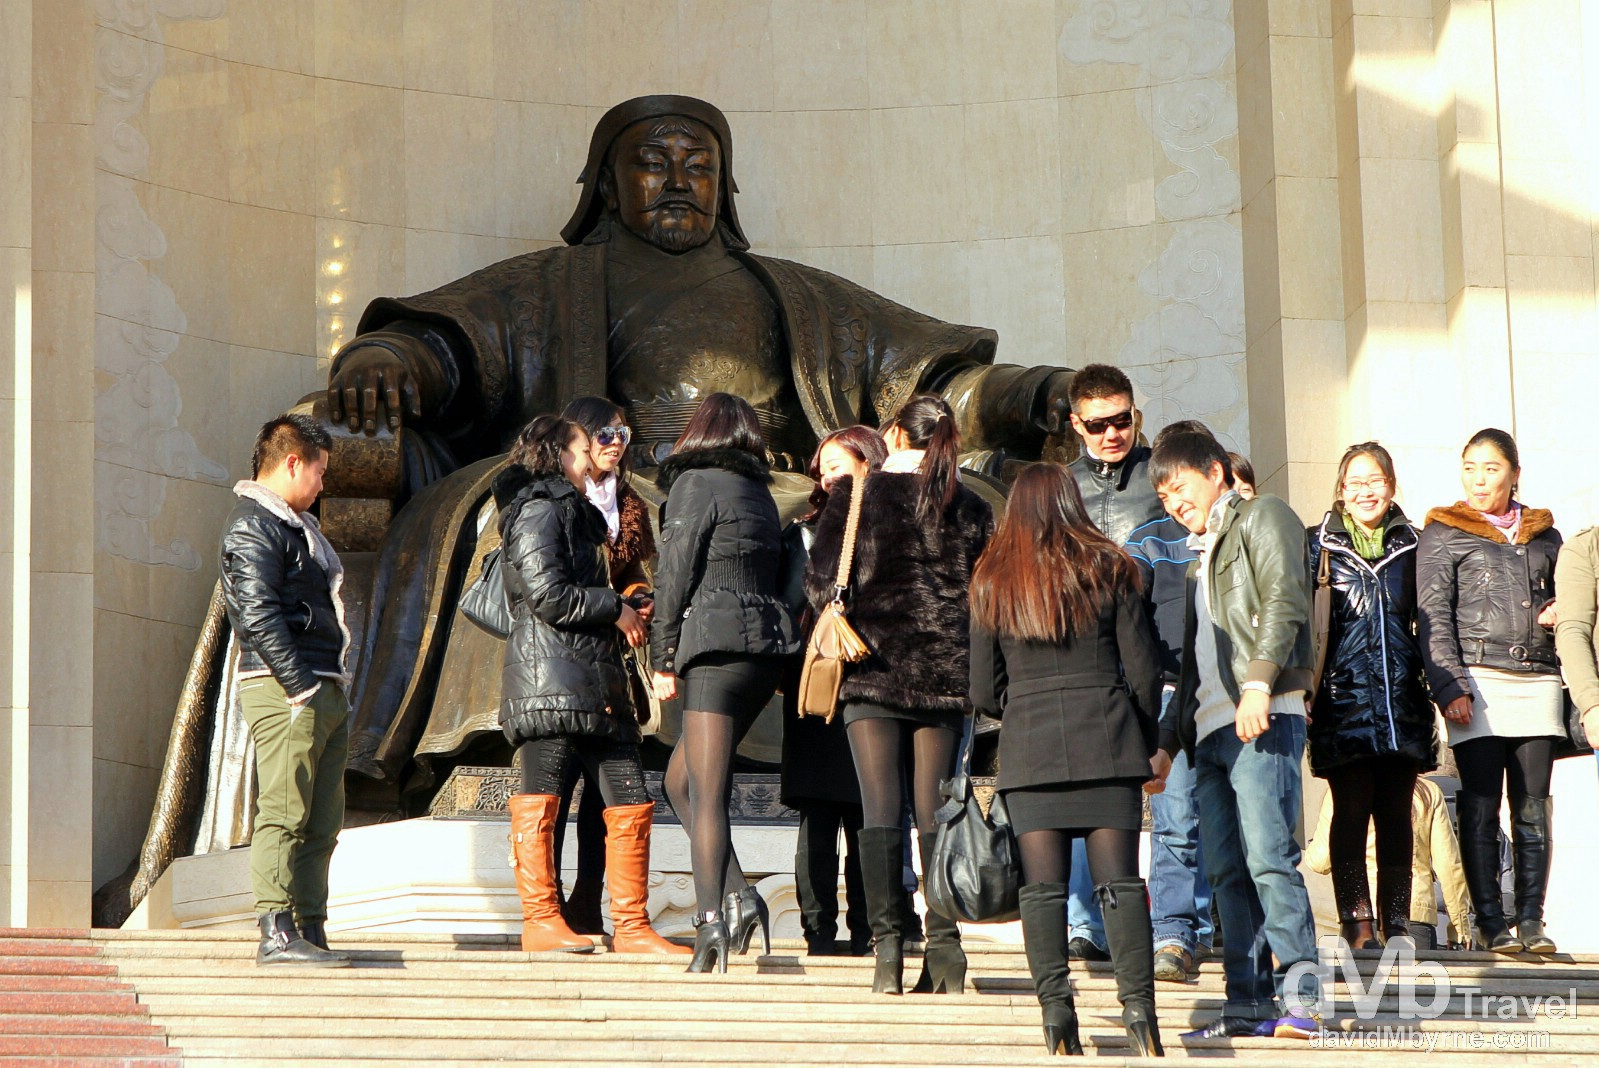 A massive statue of Genghis Khan, history's best known Mongolian, lording over his nation in Sükhbaatar Square, Ulan Bator, Mongolia. November 4th 2012.